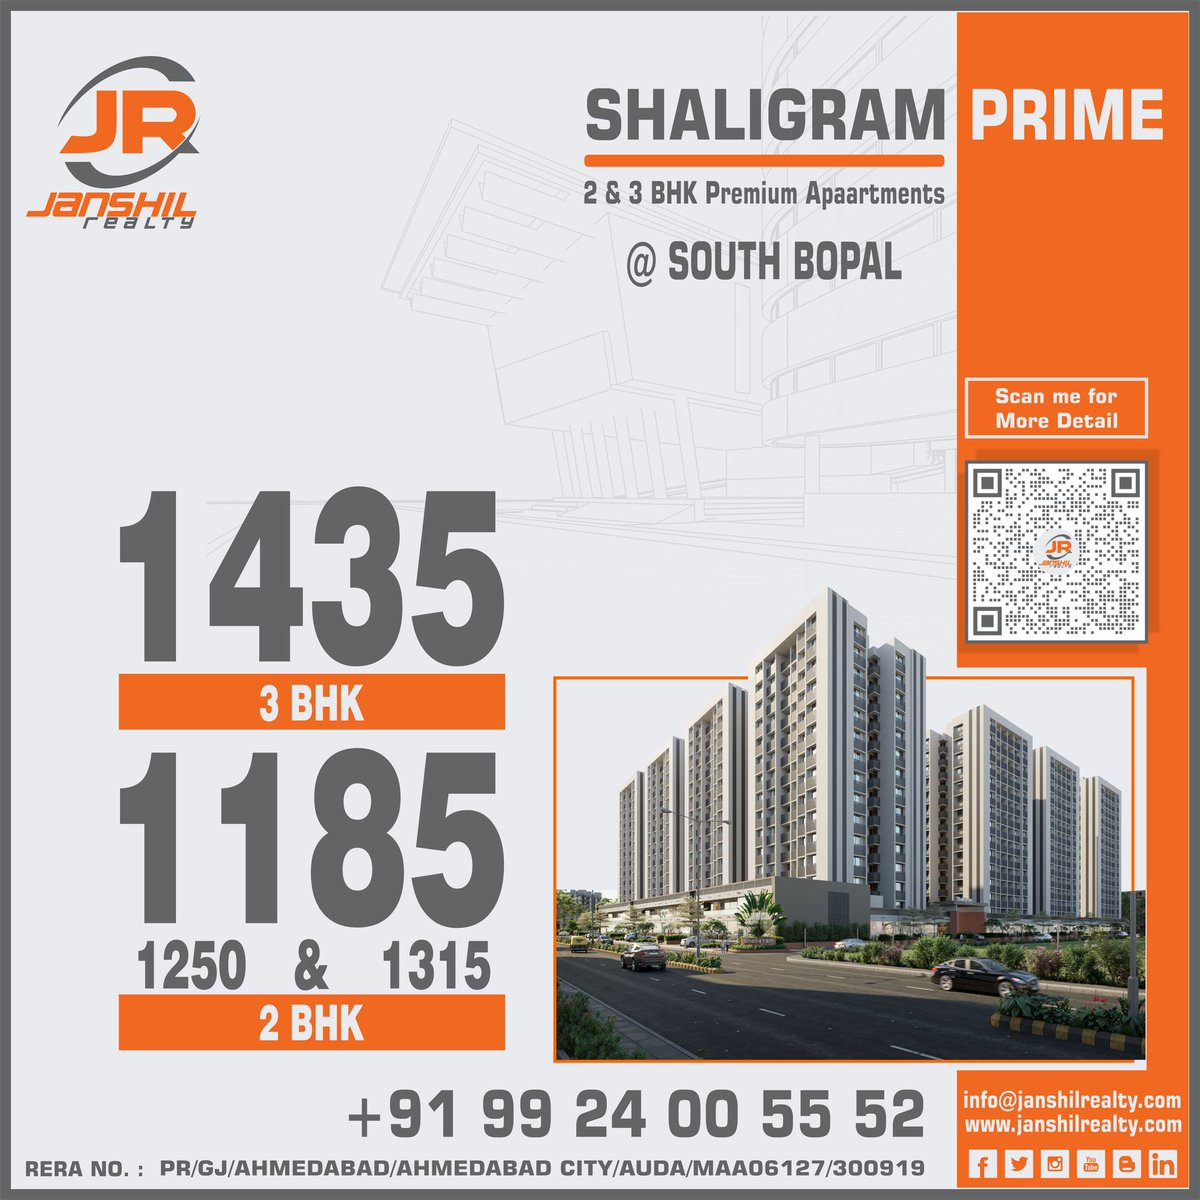 Shaligram Prime is a cocoon of #exclusive 2 & 3 BHK #premium #apartments located in #southbopal for More Detail Click http://bit.ly/2Hpb067  #realestate #property #Investment #propertymanagement #Realtor #janshilrealty #bopal #Ahmedabad #propertymanagment #propertyinvestmentspic.twitter.com/NEd7Kkn0Dv